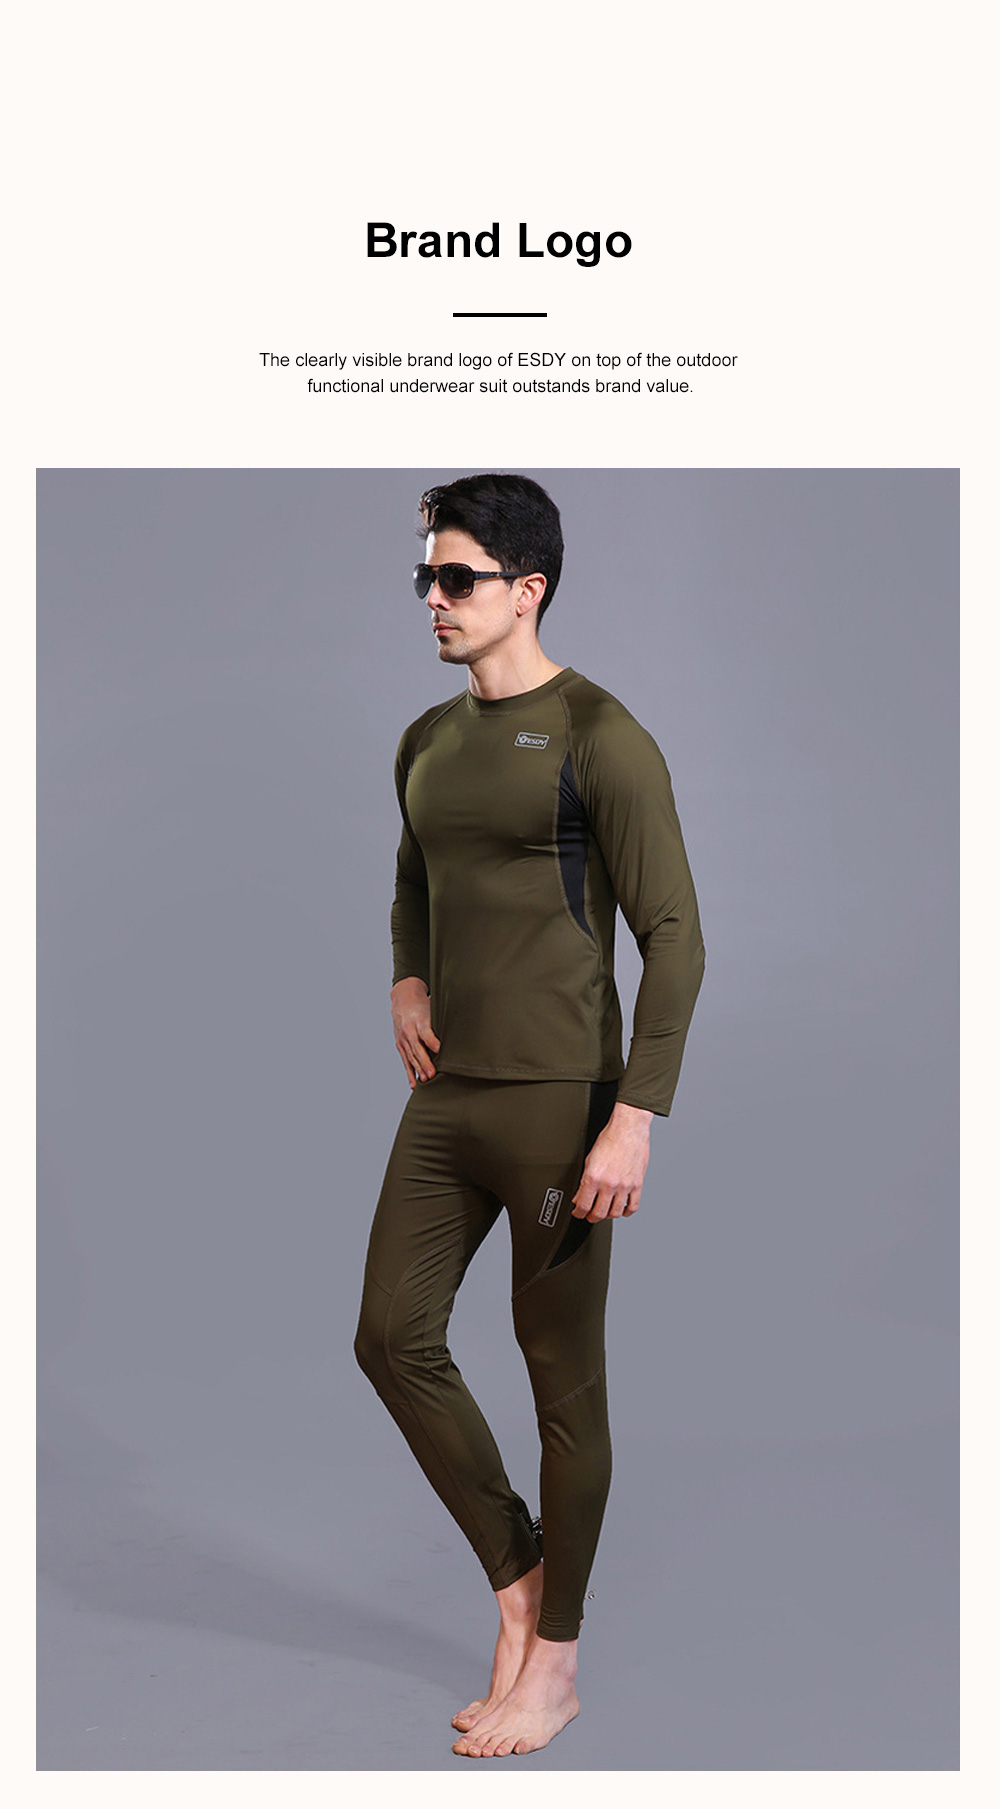 Outdoor Functional Underwear Suit for Outdoors Climbing Bicycle Riding Thermal Fleece Underwear Sweat Suit PT Uniform 1